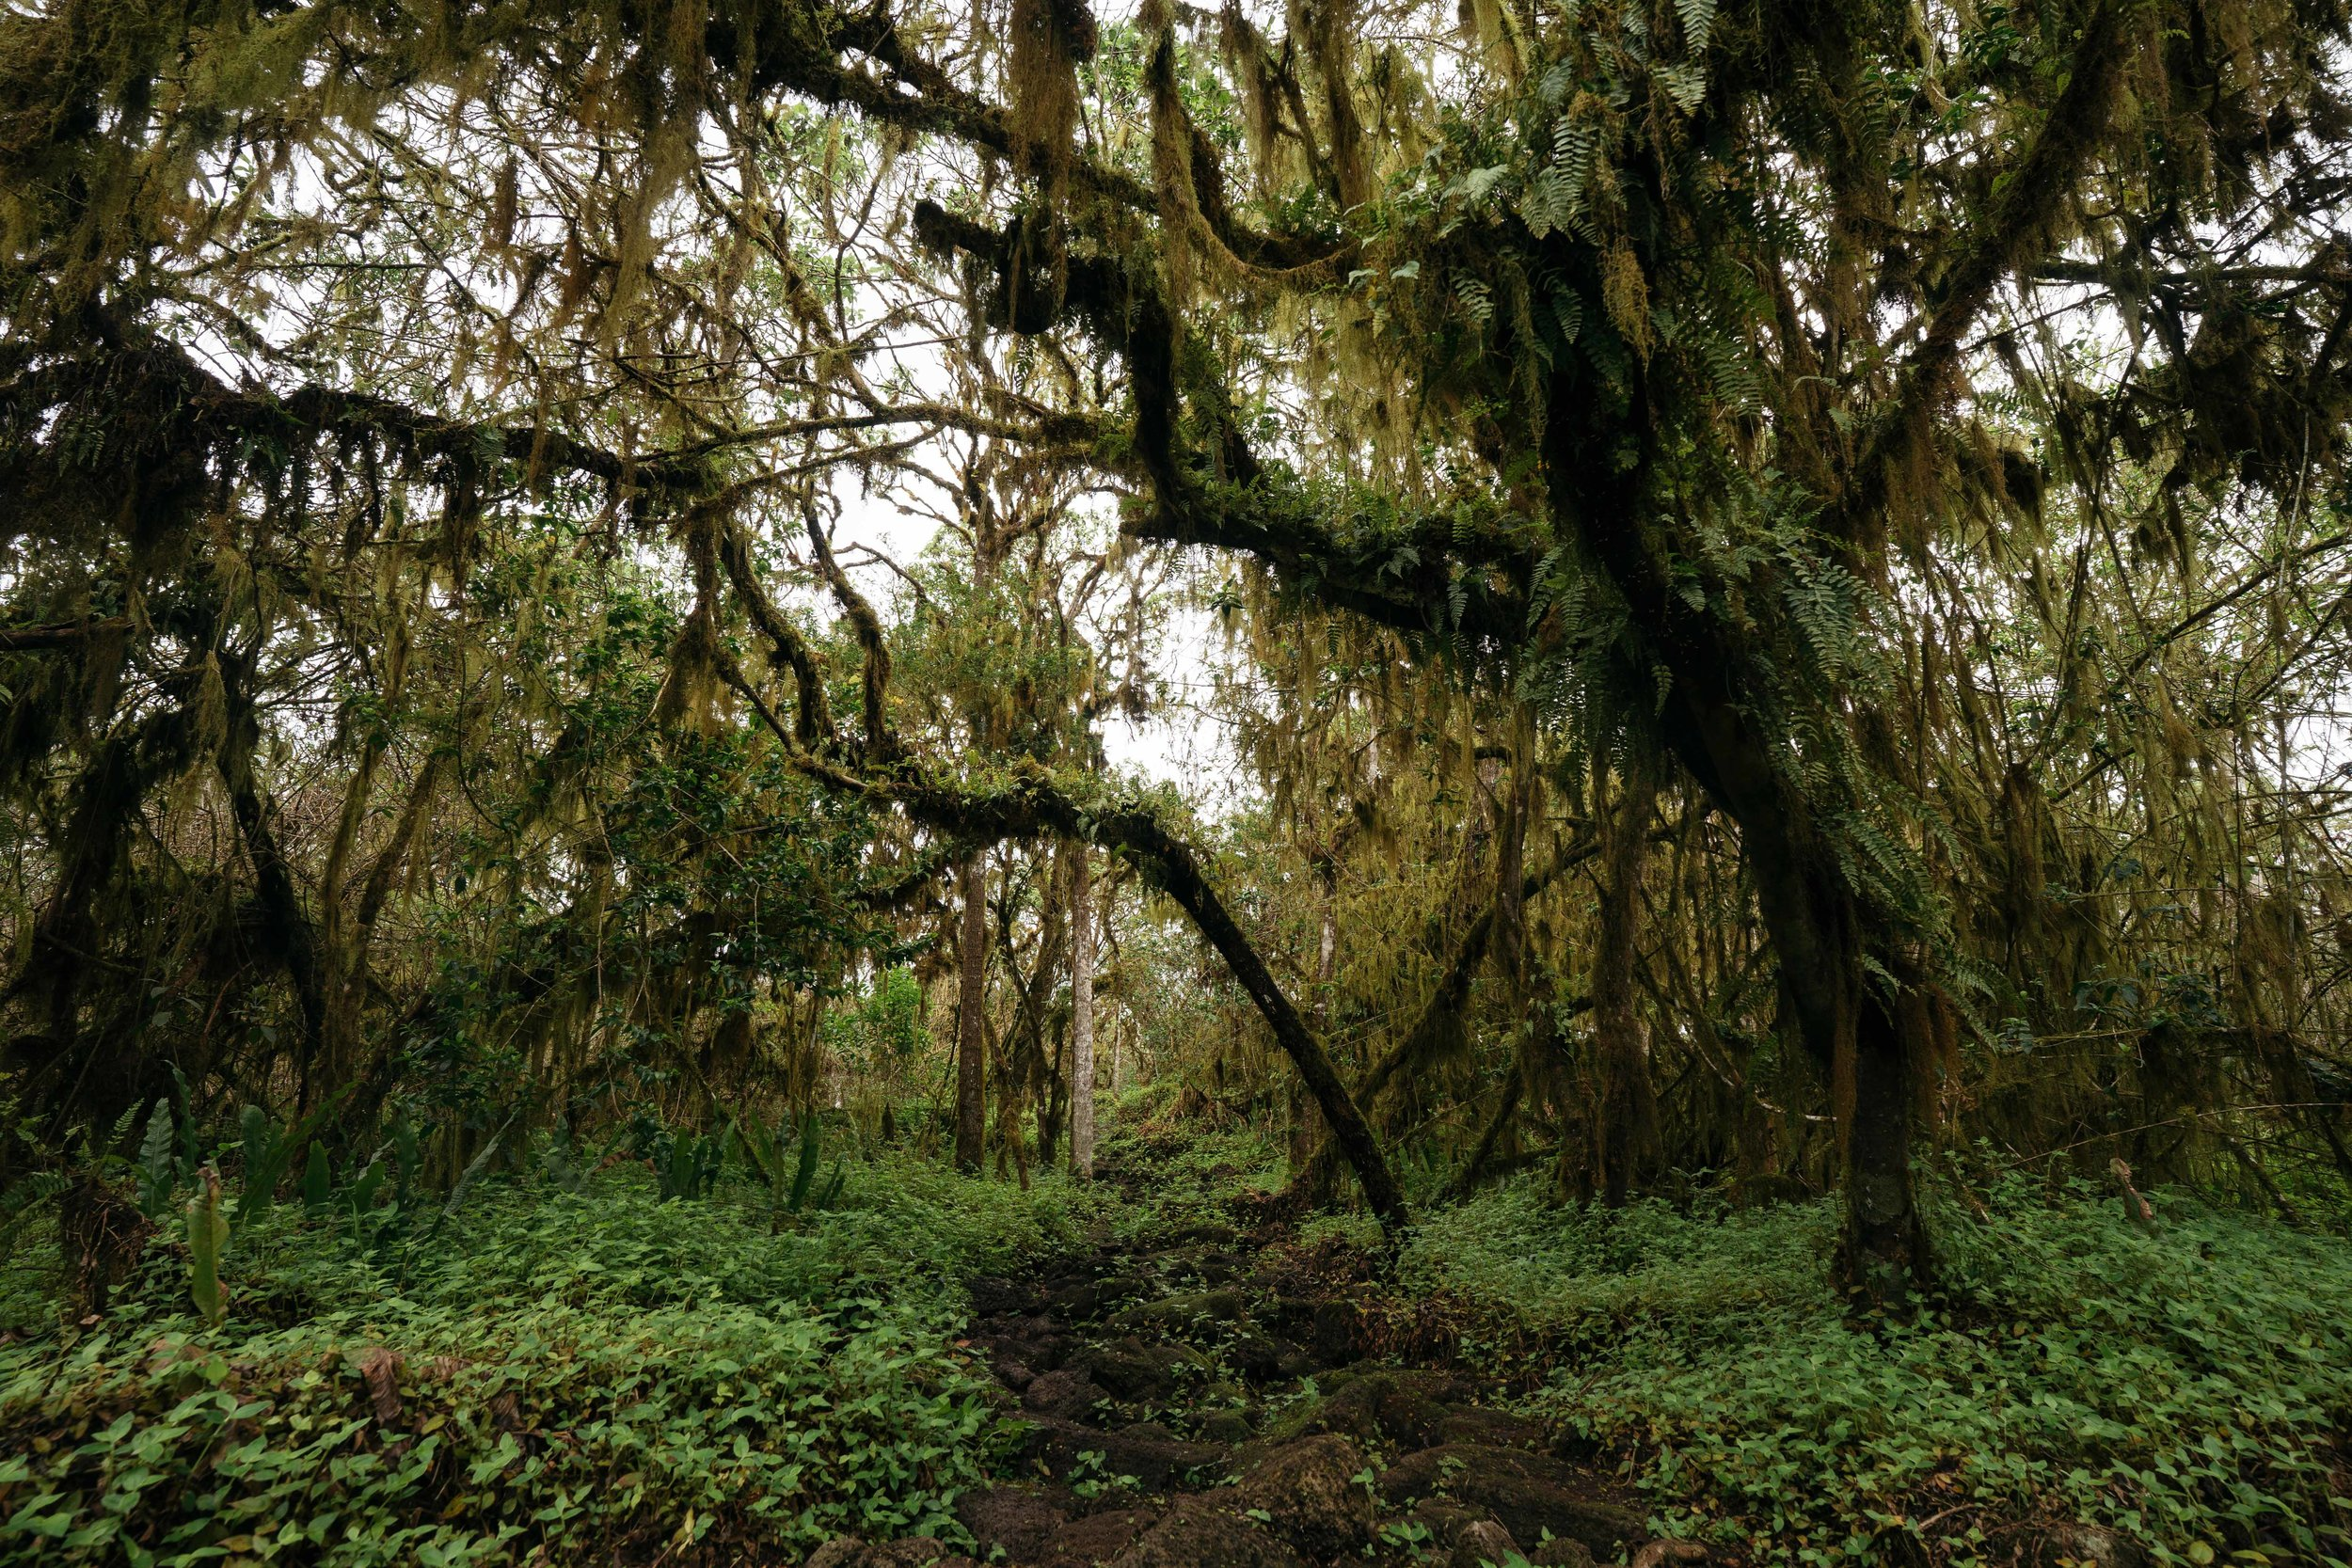 Inside the short loop through an enchanted forest of Guayabillo trees - Los Gemelos